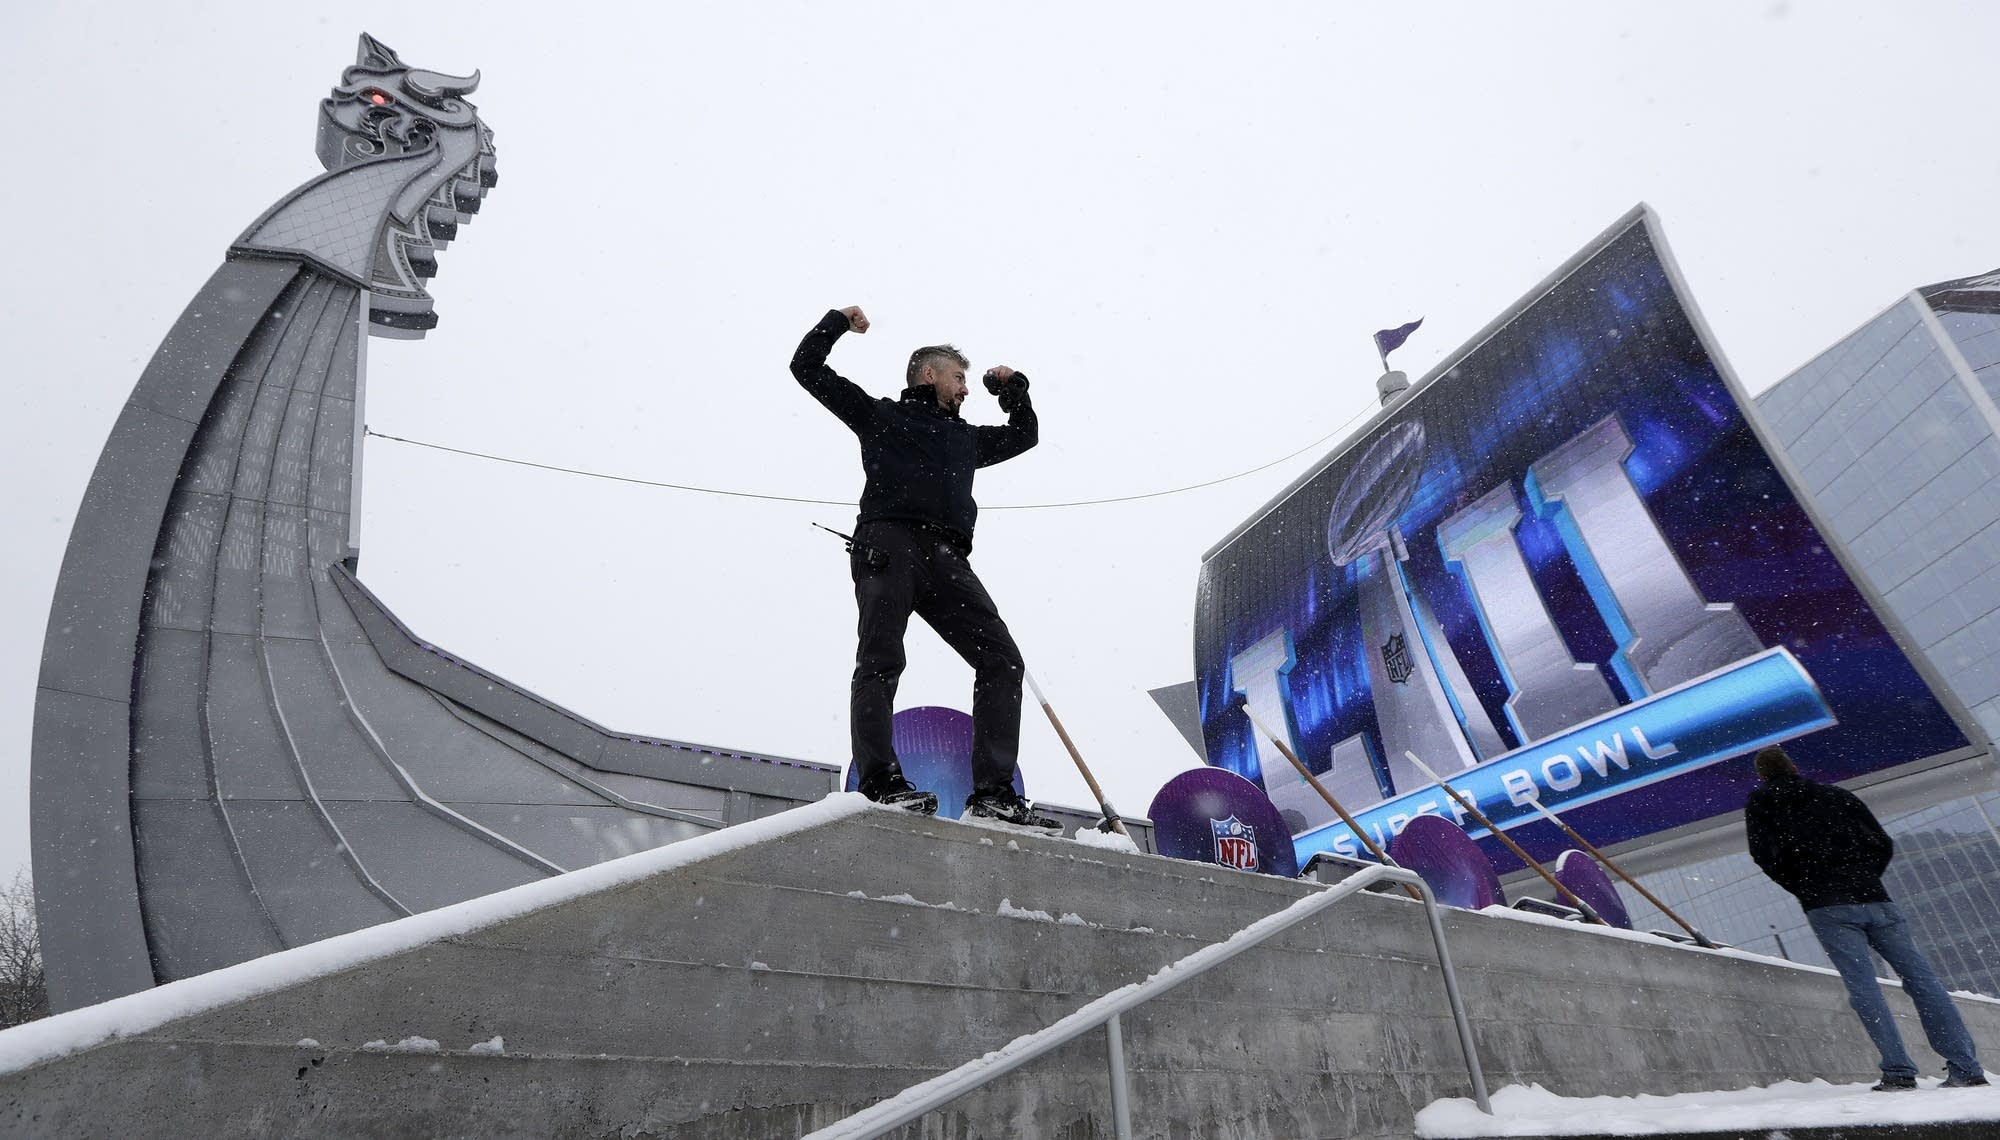 Connor Todd, of New York, poses for a photo outside U.S. Bank Stadium.